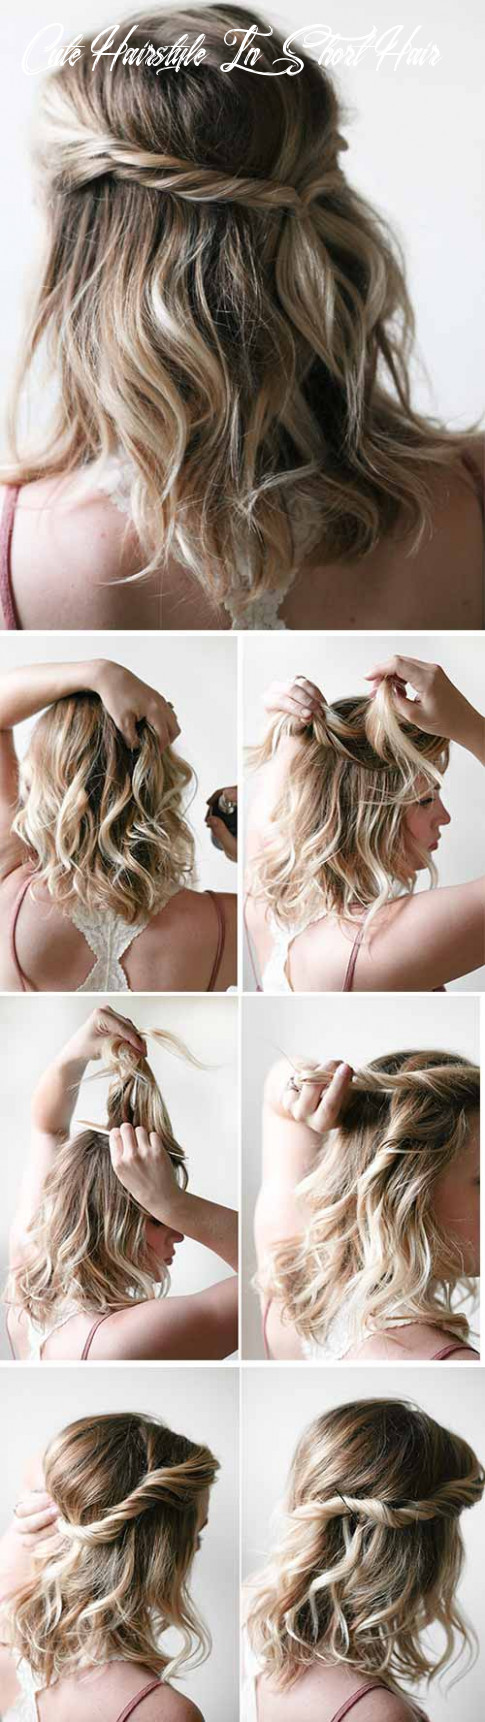 10 incredible diy short hairstyles a step by step guide cute hairstyle in short hair